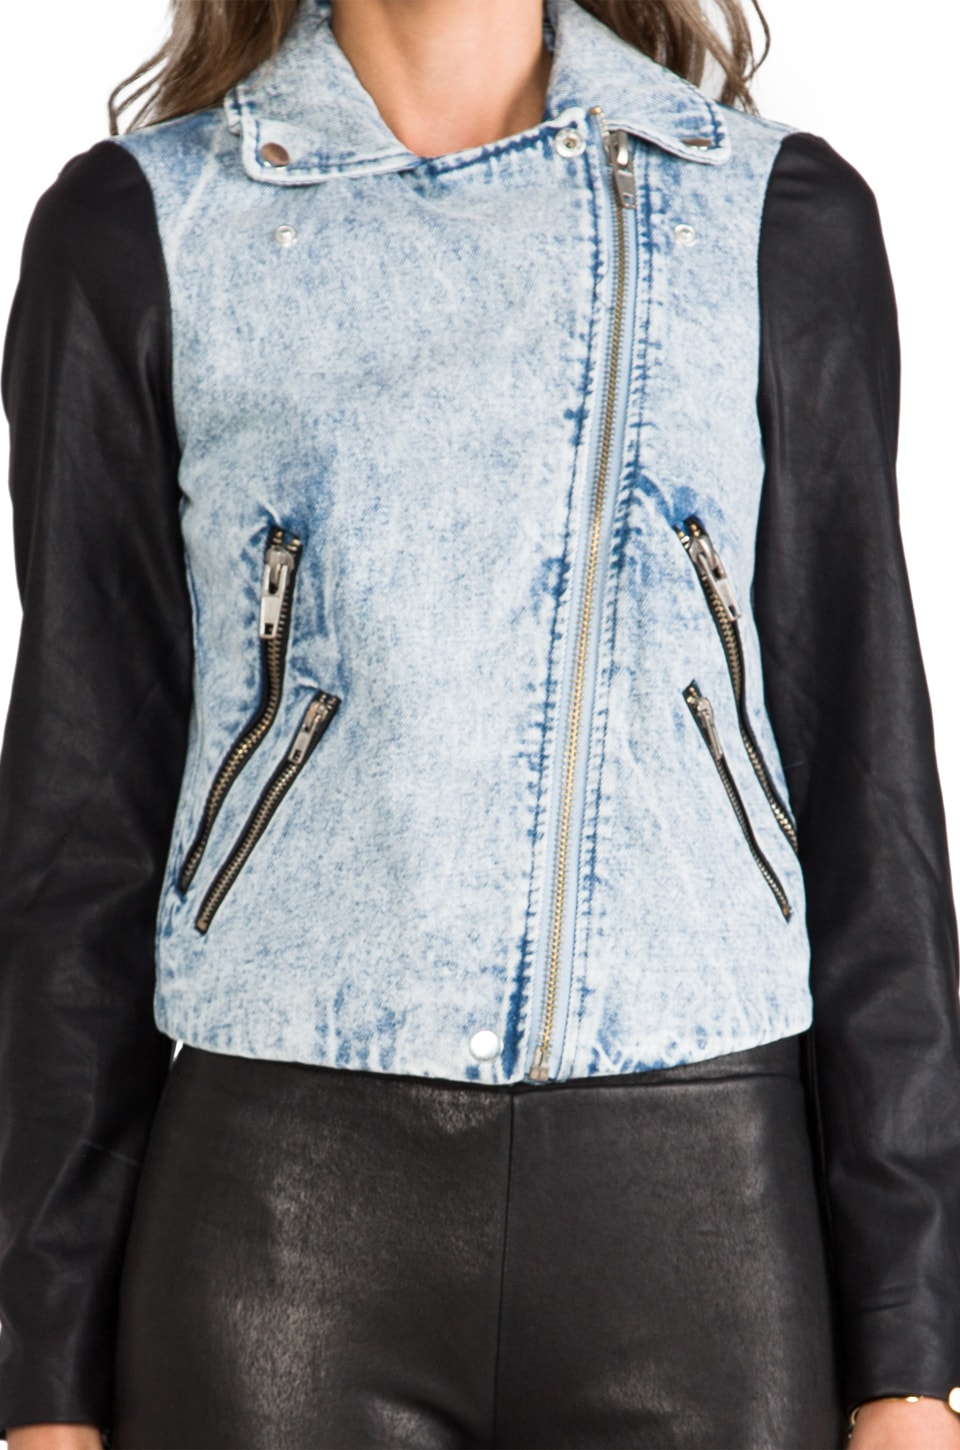 Finders Keepers Moonlight Jacket in Denim/Black